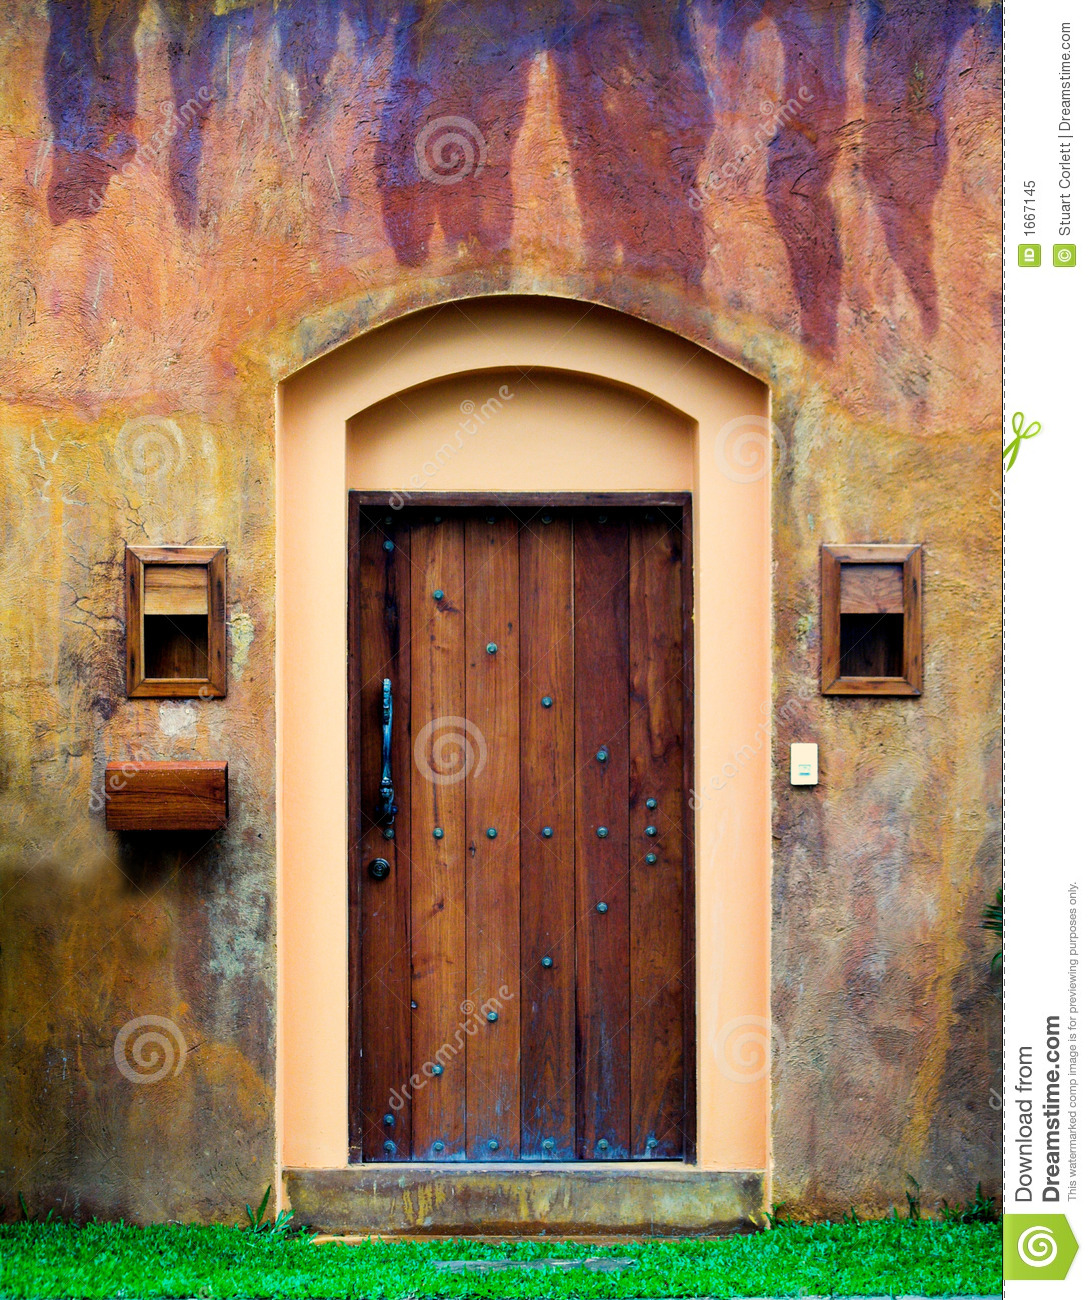 1300 #088B20 Middle Eastern Architecture Doorway And Door. picture/photo Mediterranean Entry Doors 44691092